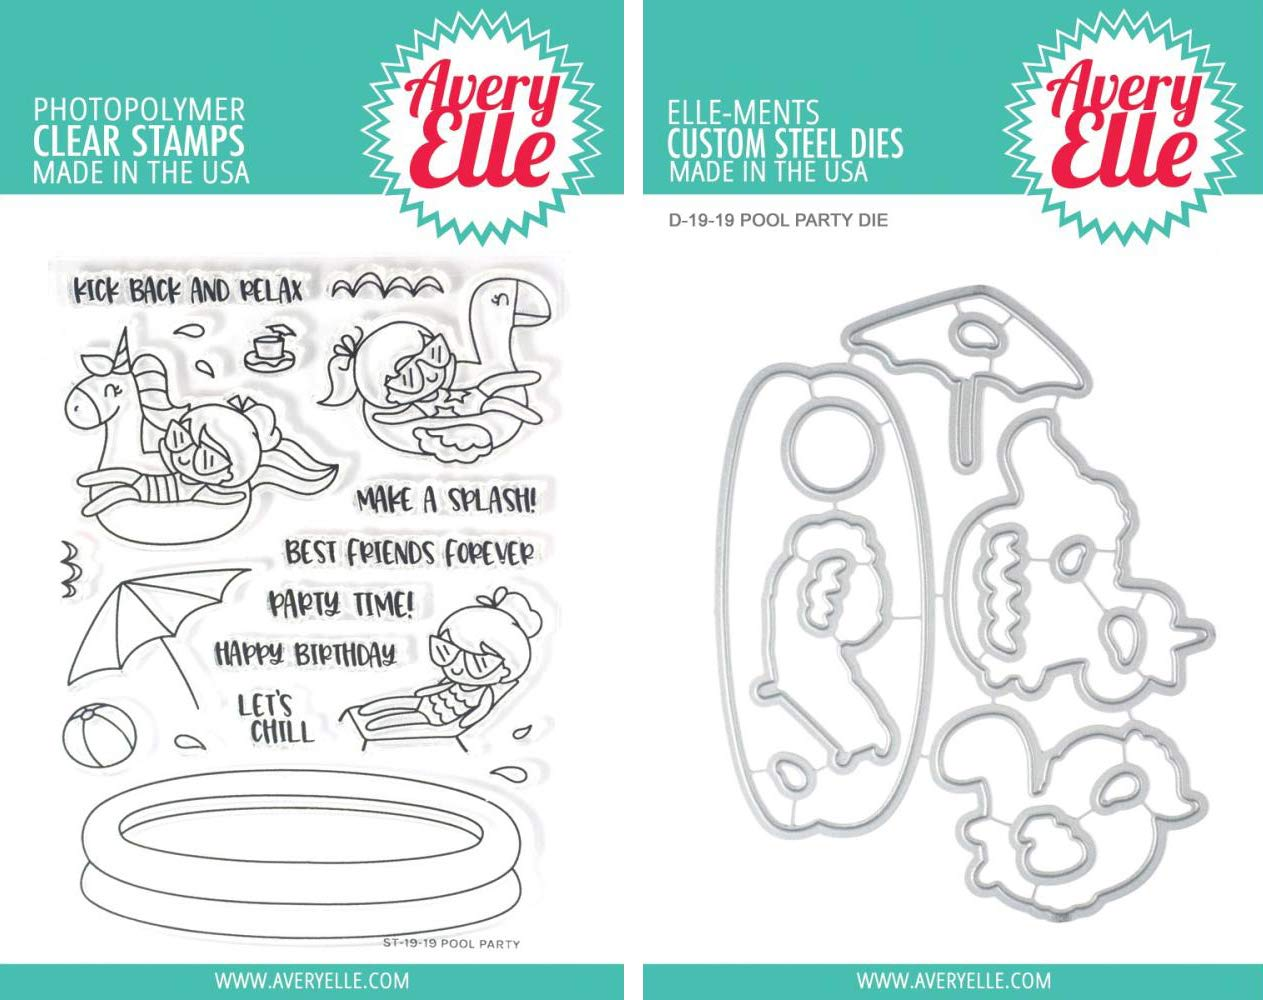 Avery Elle - Pool Party Clear Stamps and Dies Set - 2 Item Bundle